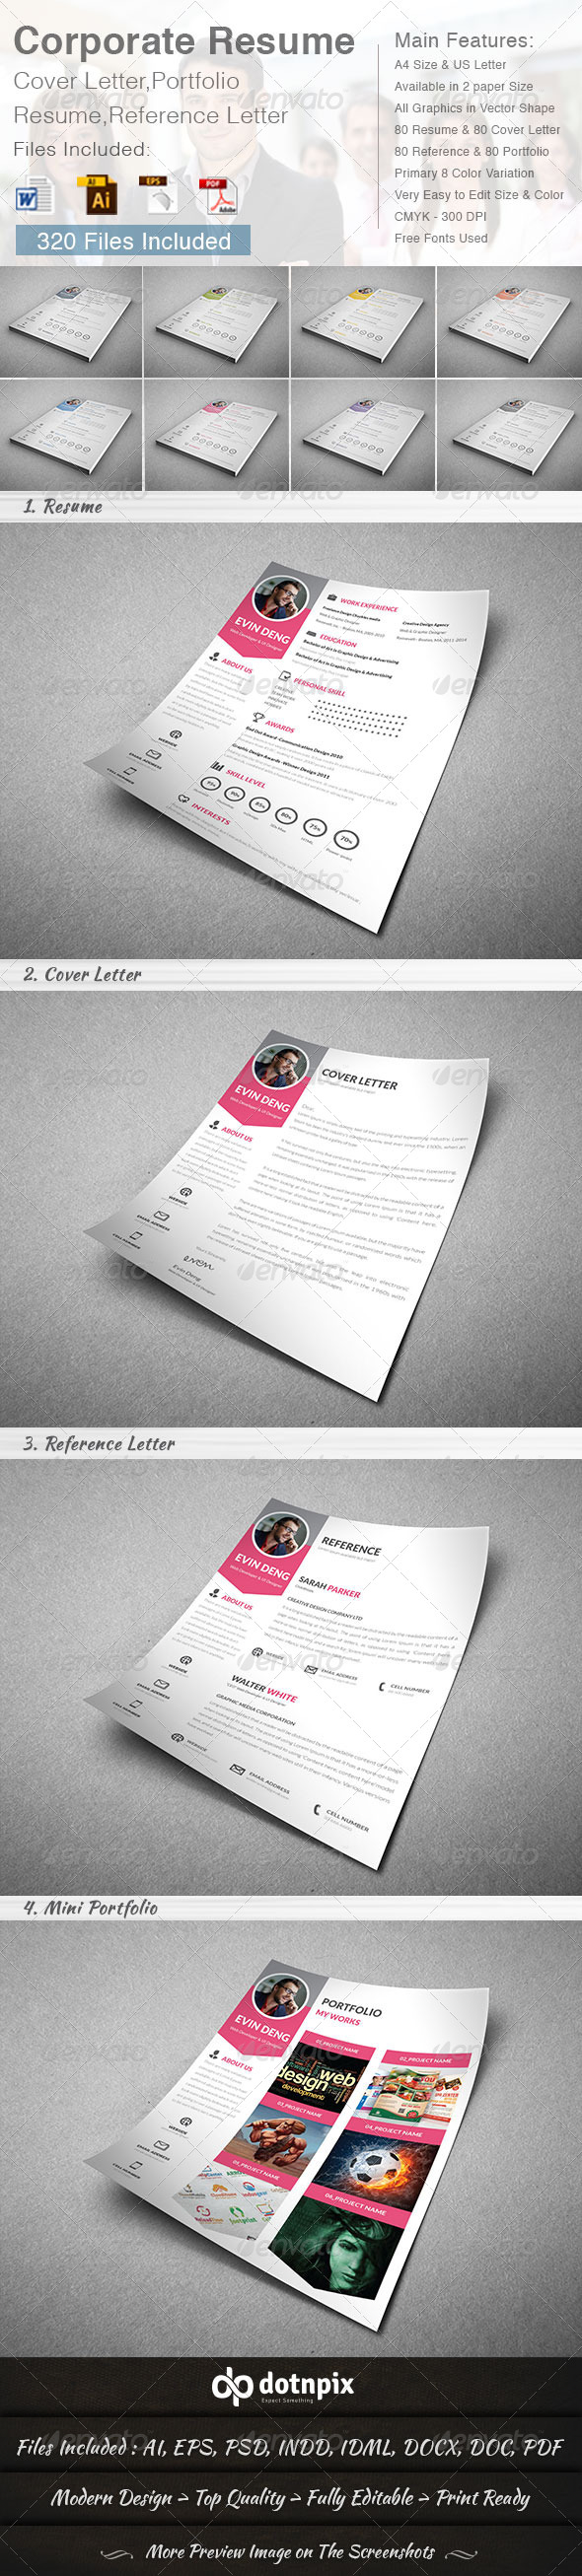 GraphicRiver Corporate Resume 4 in 1 8658356